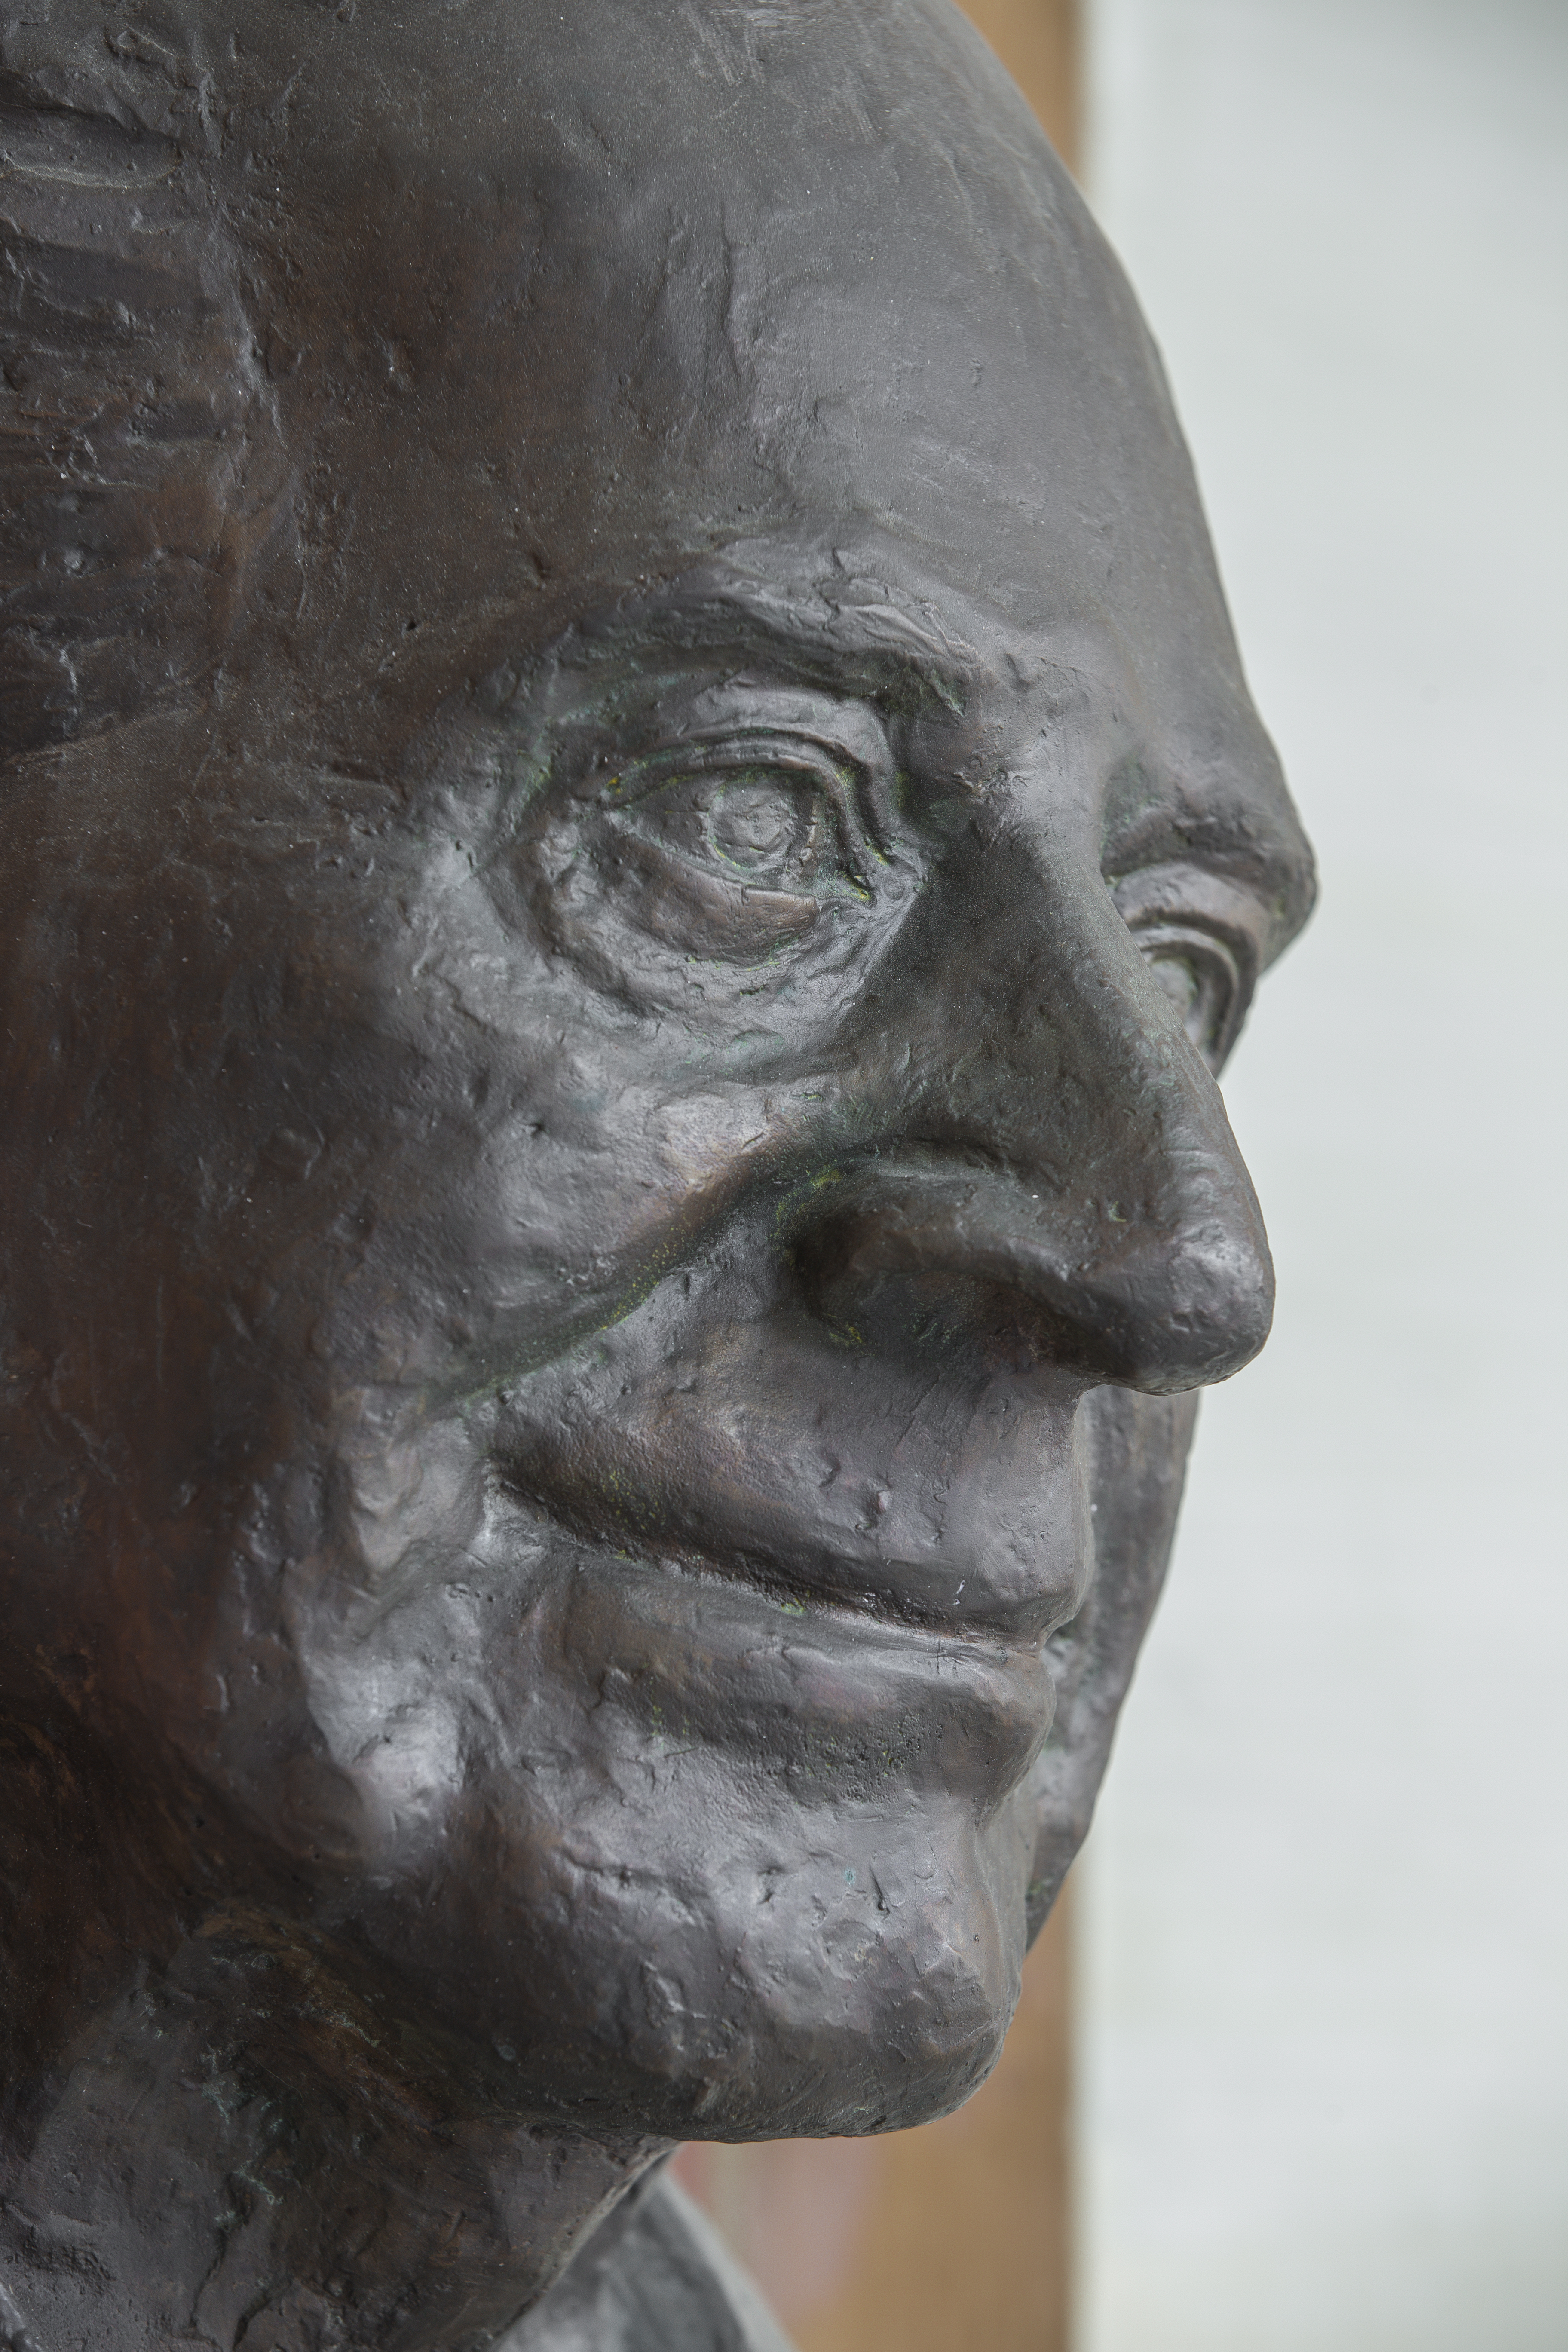 Karl Popper (1902-1994), Nr. 104 bust (bronze) in the Arkadenhof of the University of Vienna-2485.jpg Deutsch: Karl Popper (1902-1994), Büste